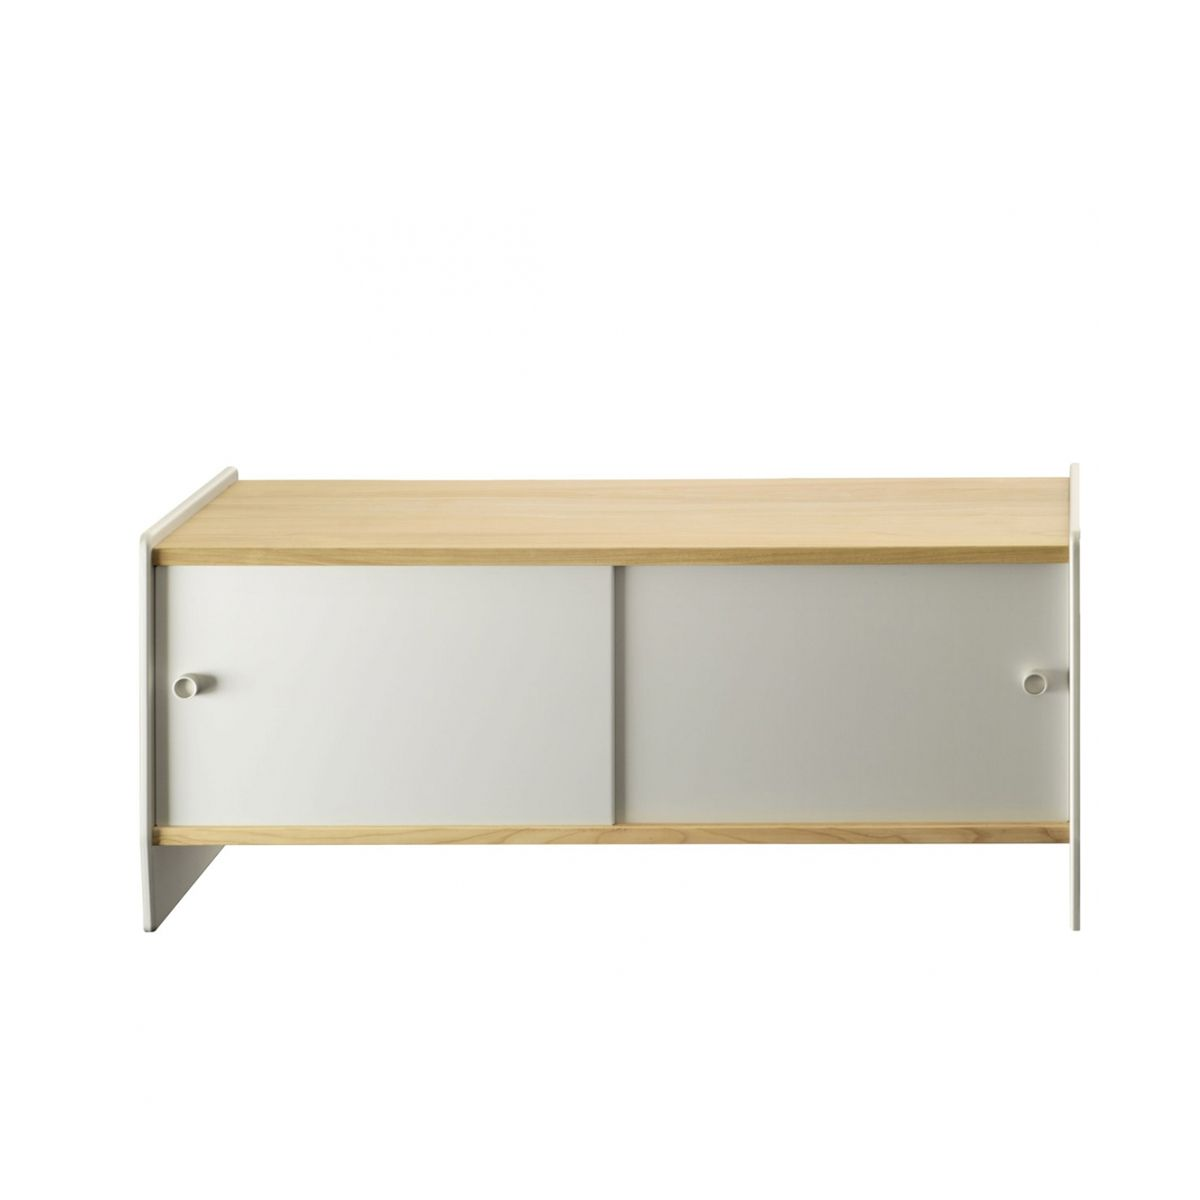 Buffet bas design theca en mdf plaqu par magis for Buffet bas design